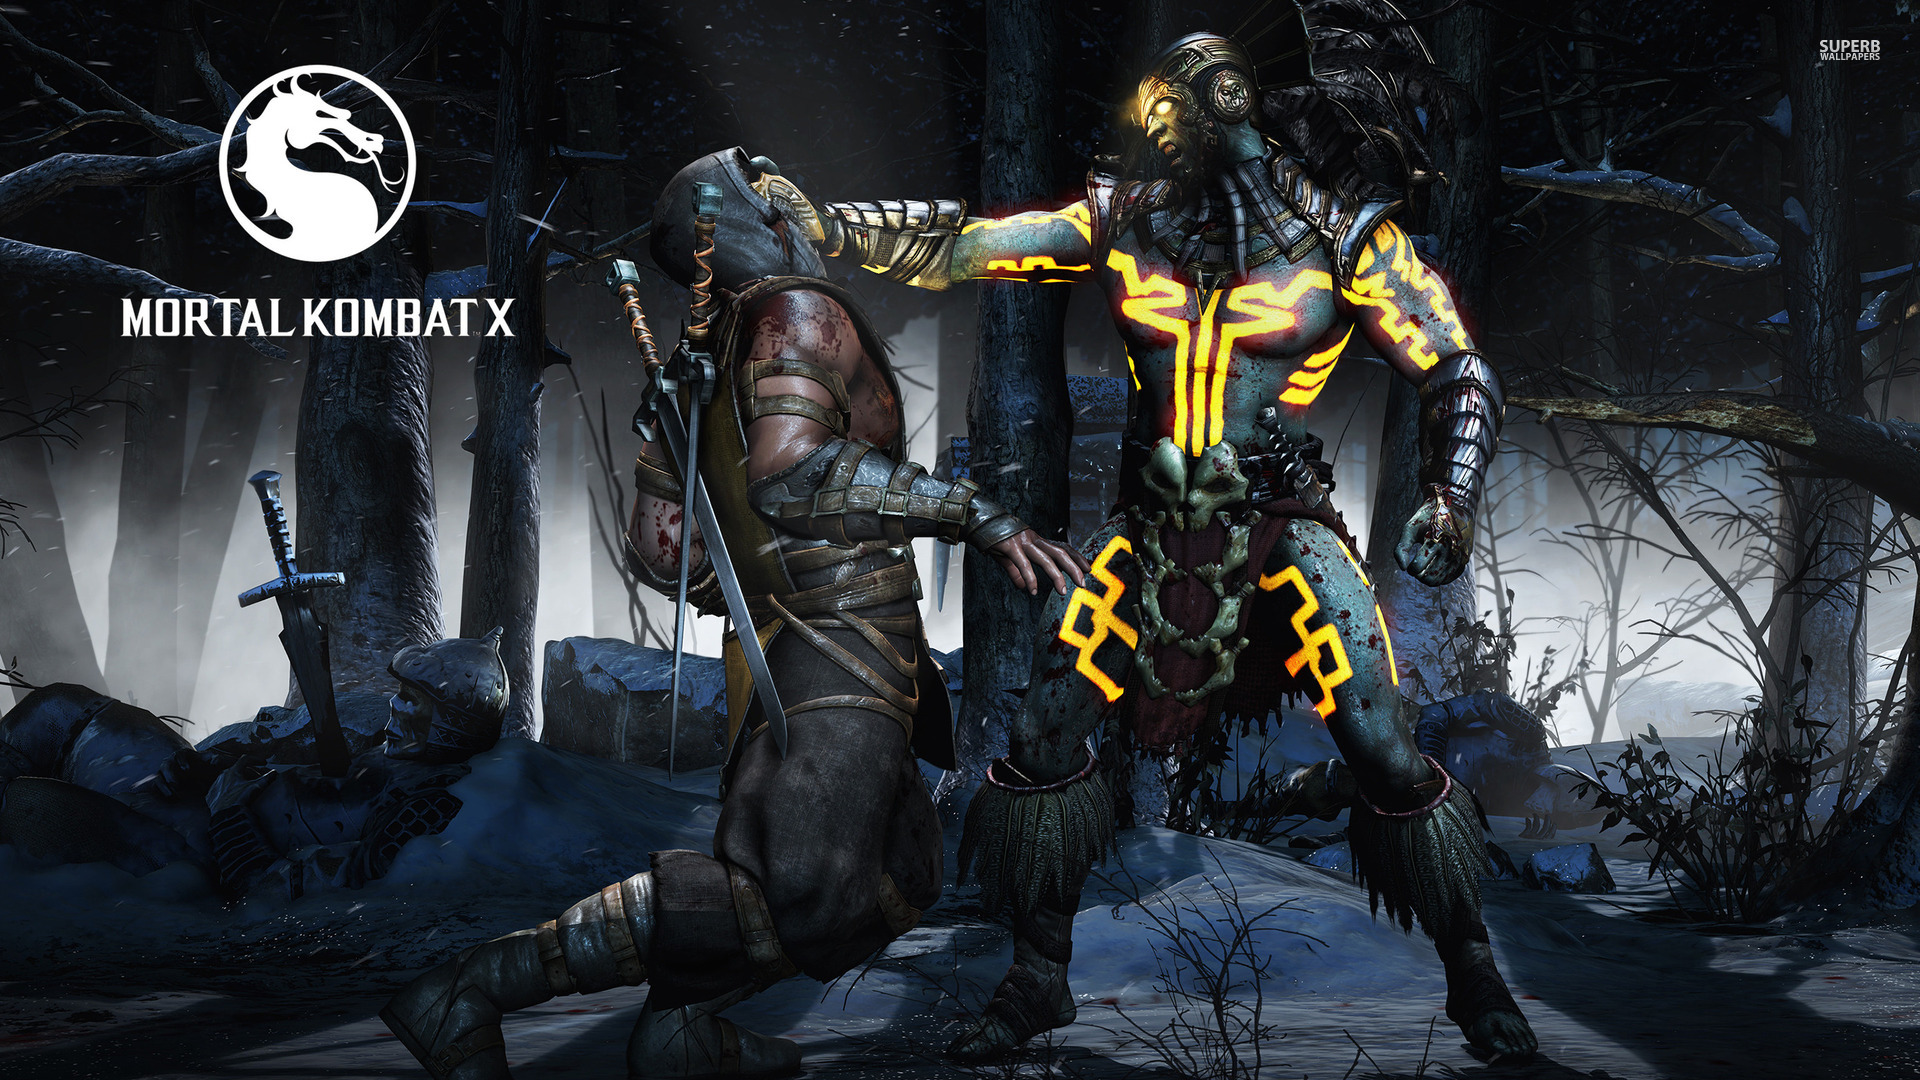 Amazing-Mortal-Kombat-X-Wallpaper